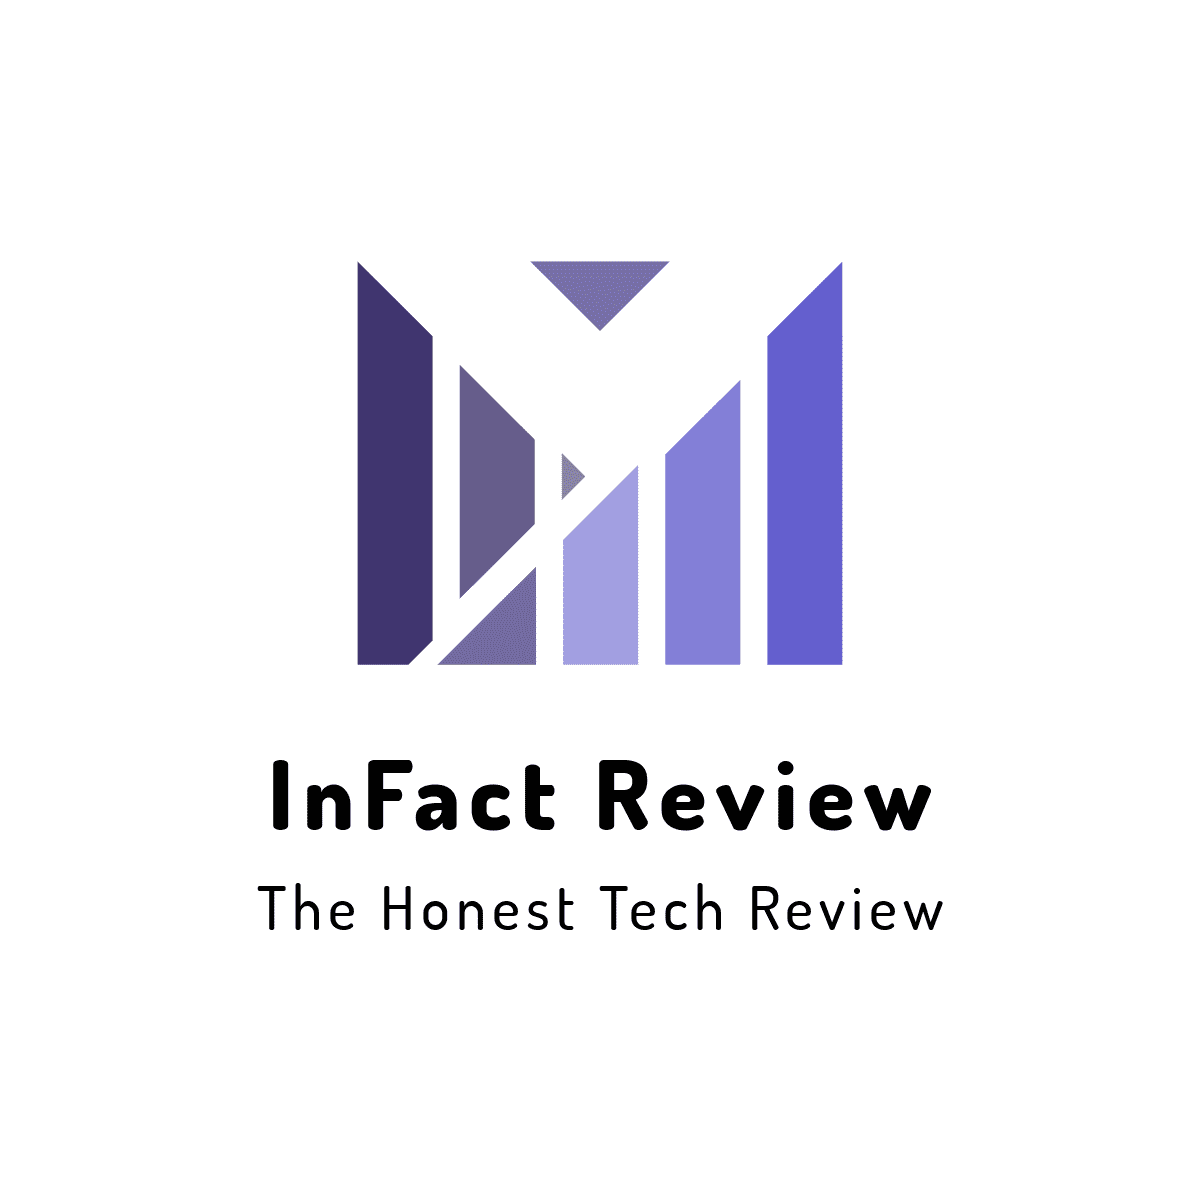 Infact review logo